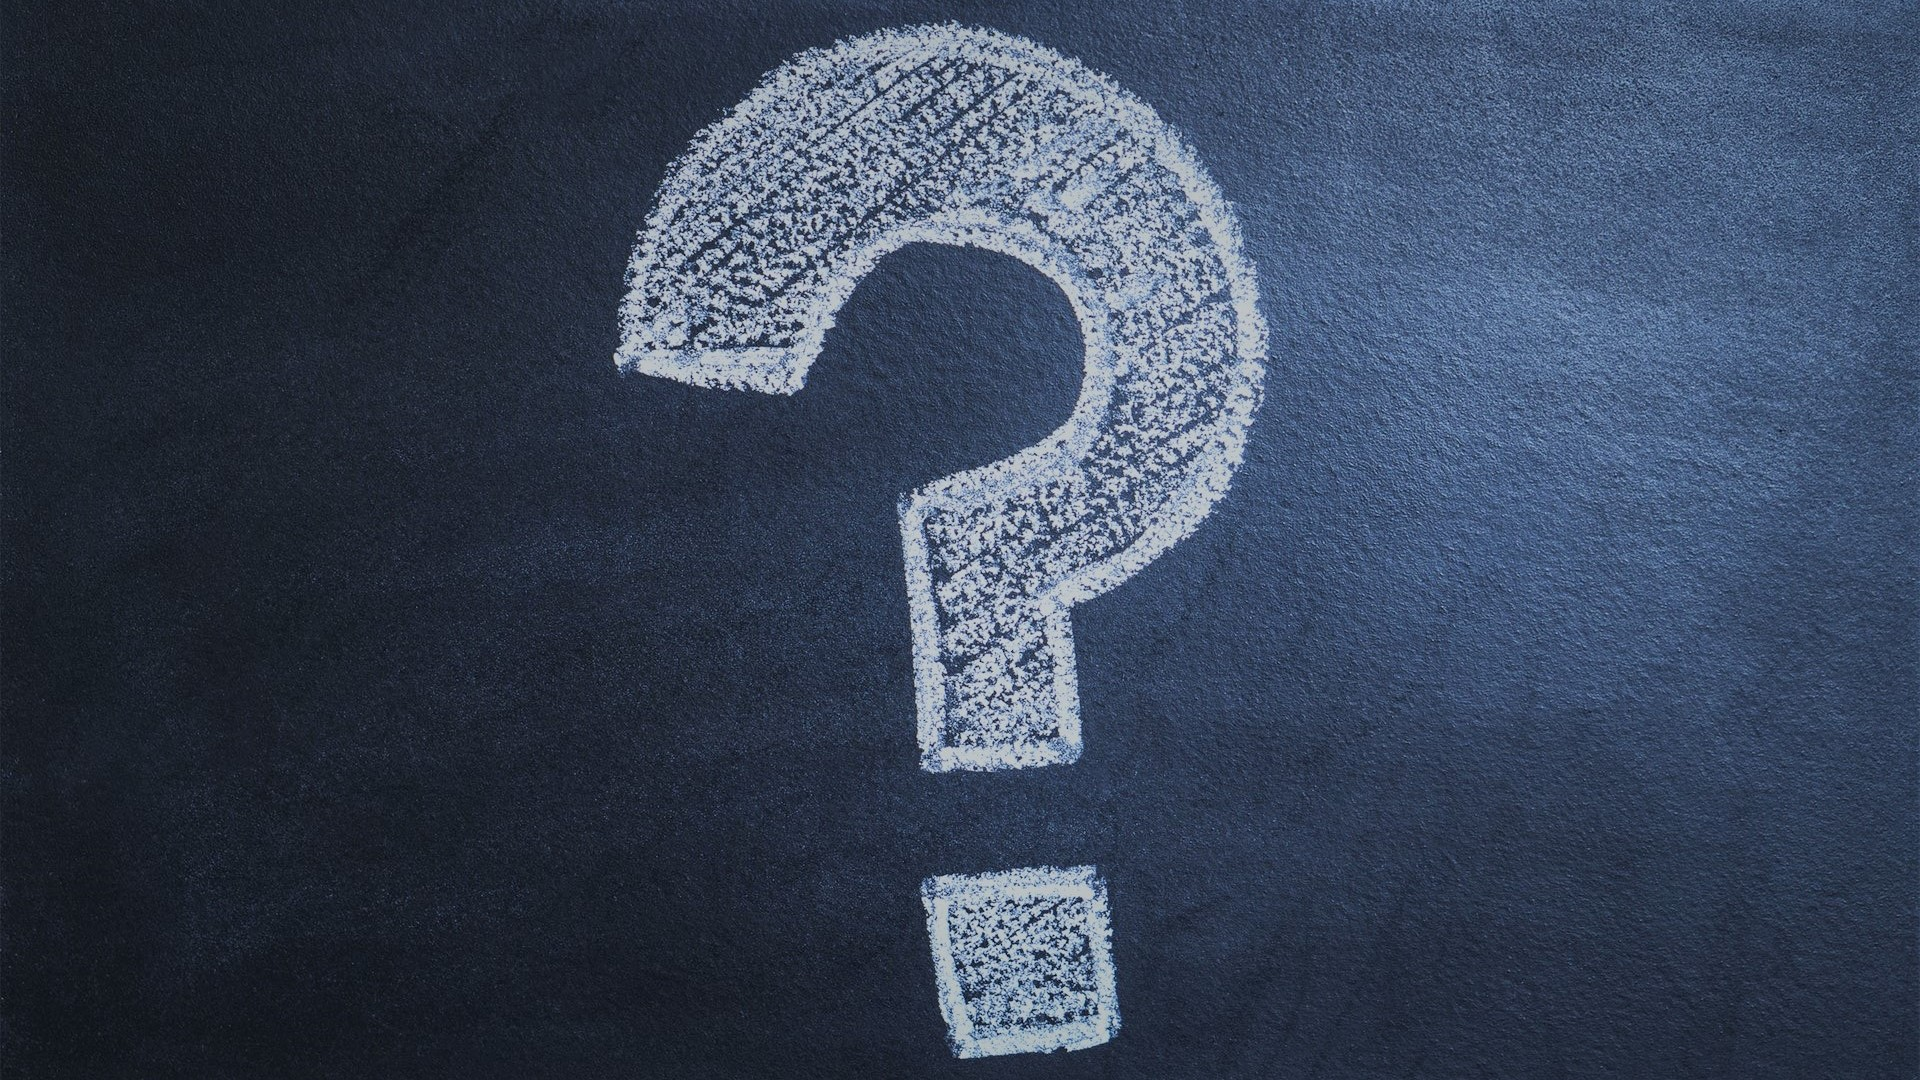 The 10 Key Questions I ask before making an investment